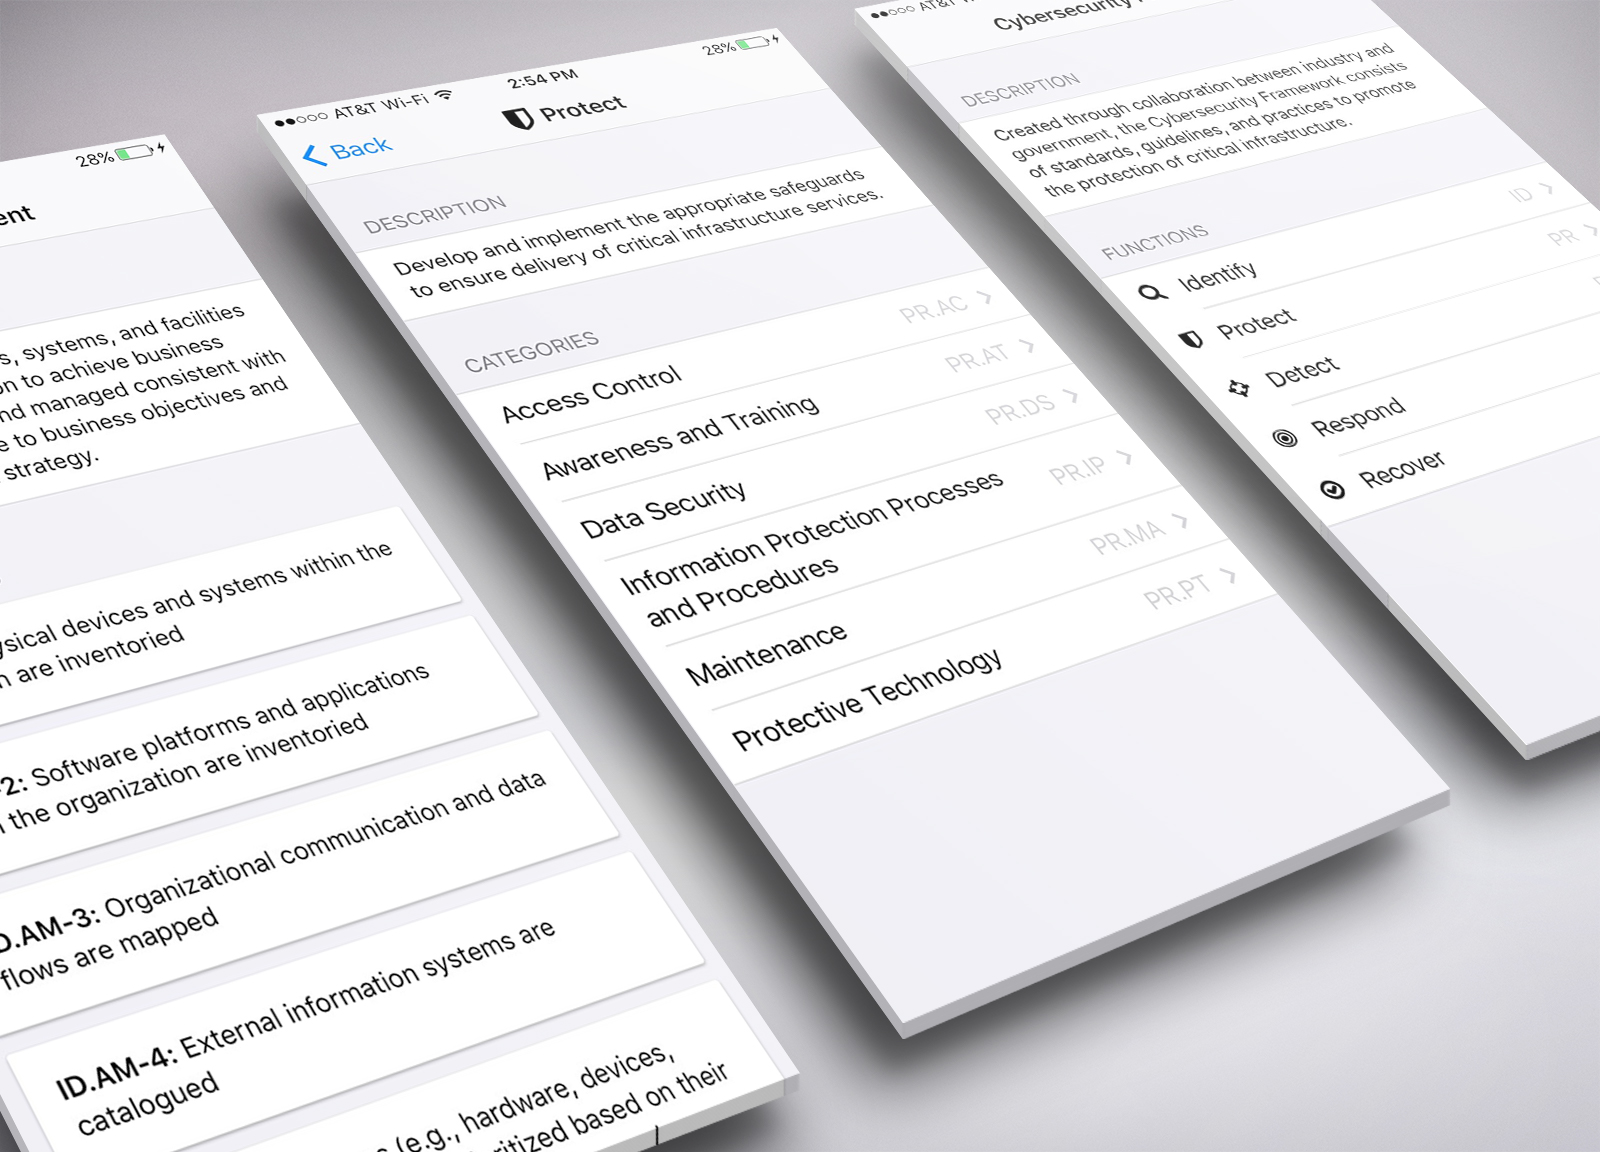 Cybersecurity Audit Checklist mobile app